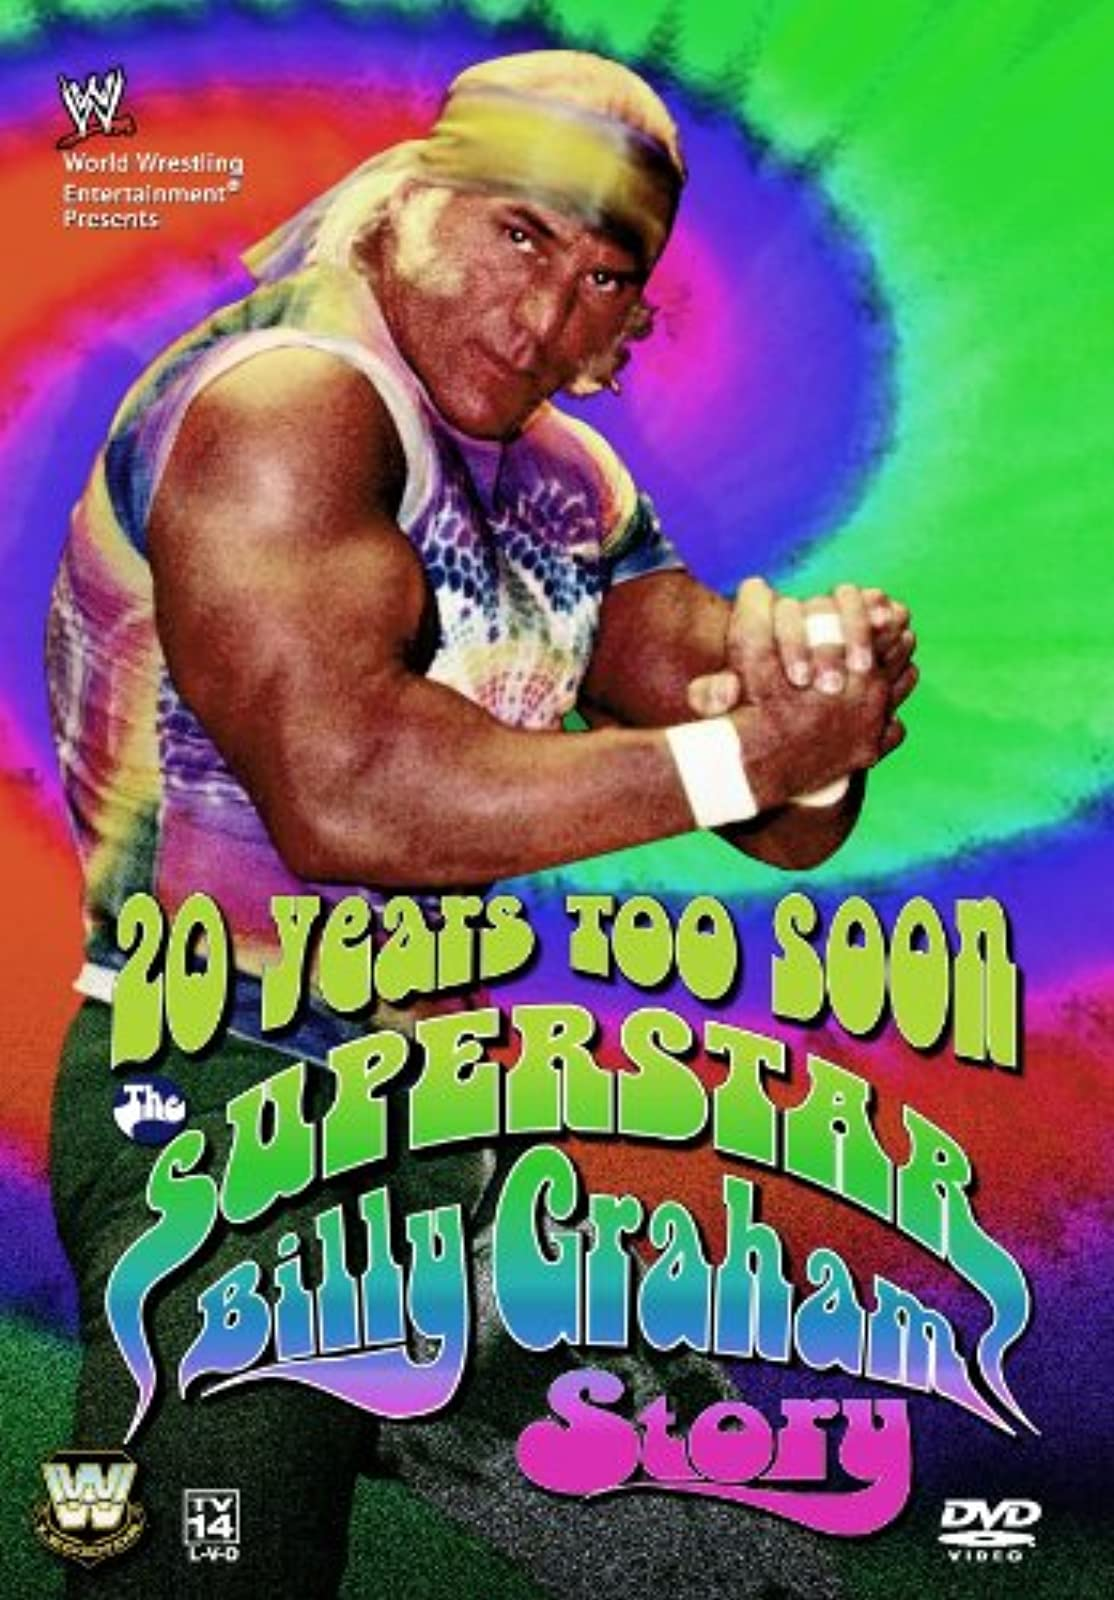 20 Years Too Soon The Superstar Billy Graham Story WWE On DVD With Hulk Hogan